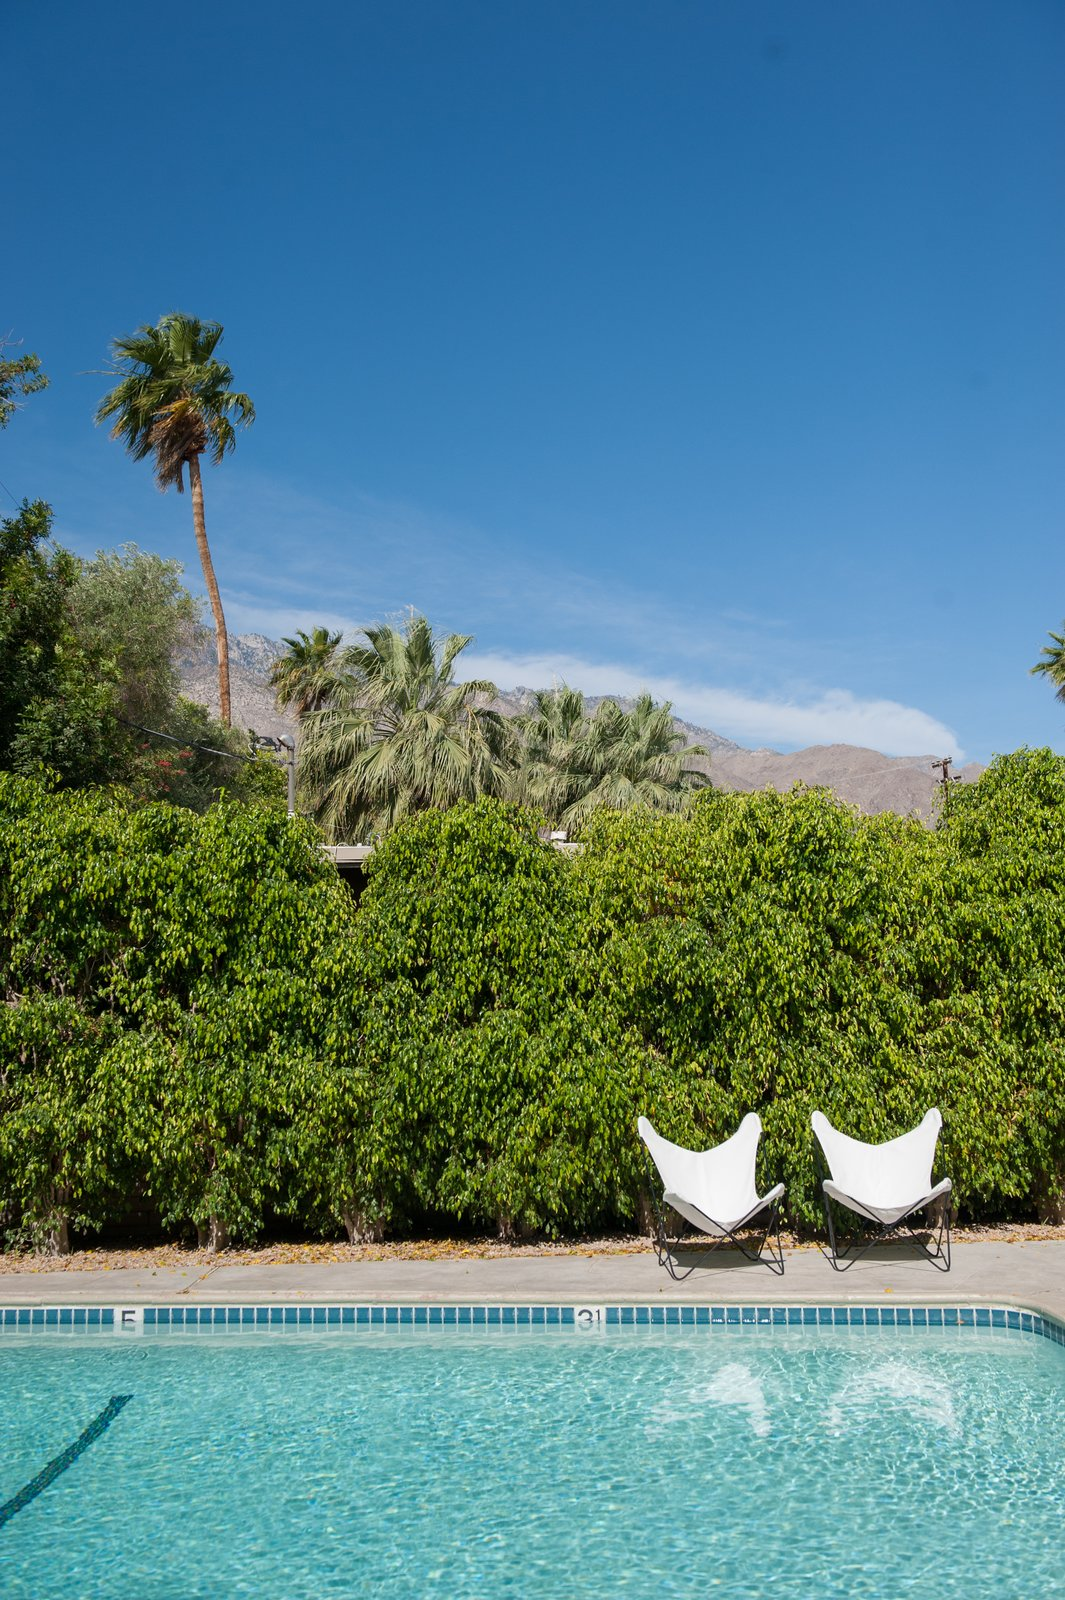 The Amado outdoor pool area looking over the valley of Palm Springs.